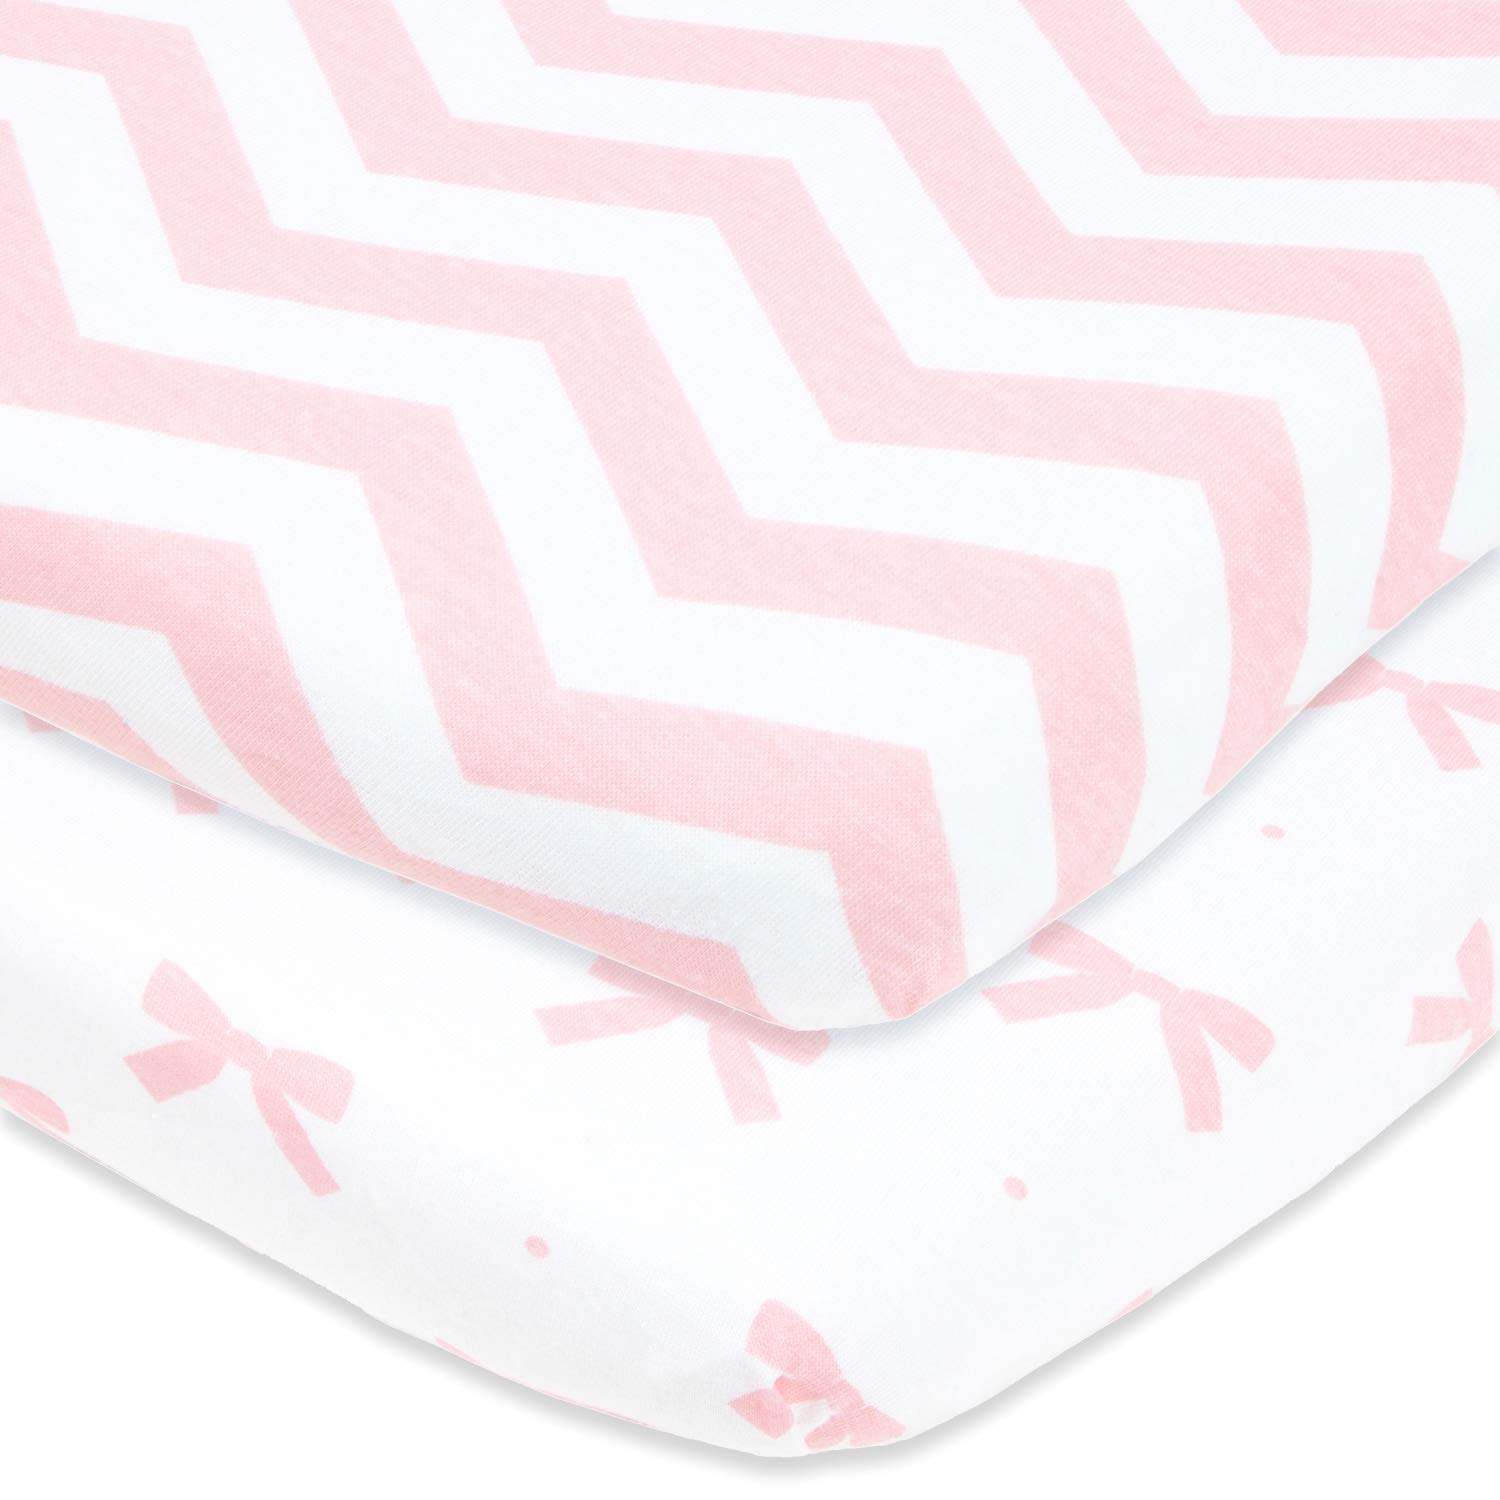 Bassinet Sheets Set 2 Pack for Baby Girls by Cuddly Cubs | Soft, Breathable Pure Jersey Cotton | Fitted Elastic Design | Pink Bow with Chevron | Compatible with Halo, Chicco Lullago, Bjorn, Ingenuity